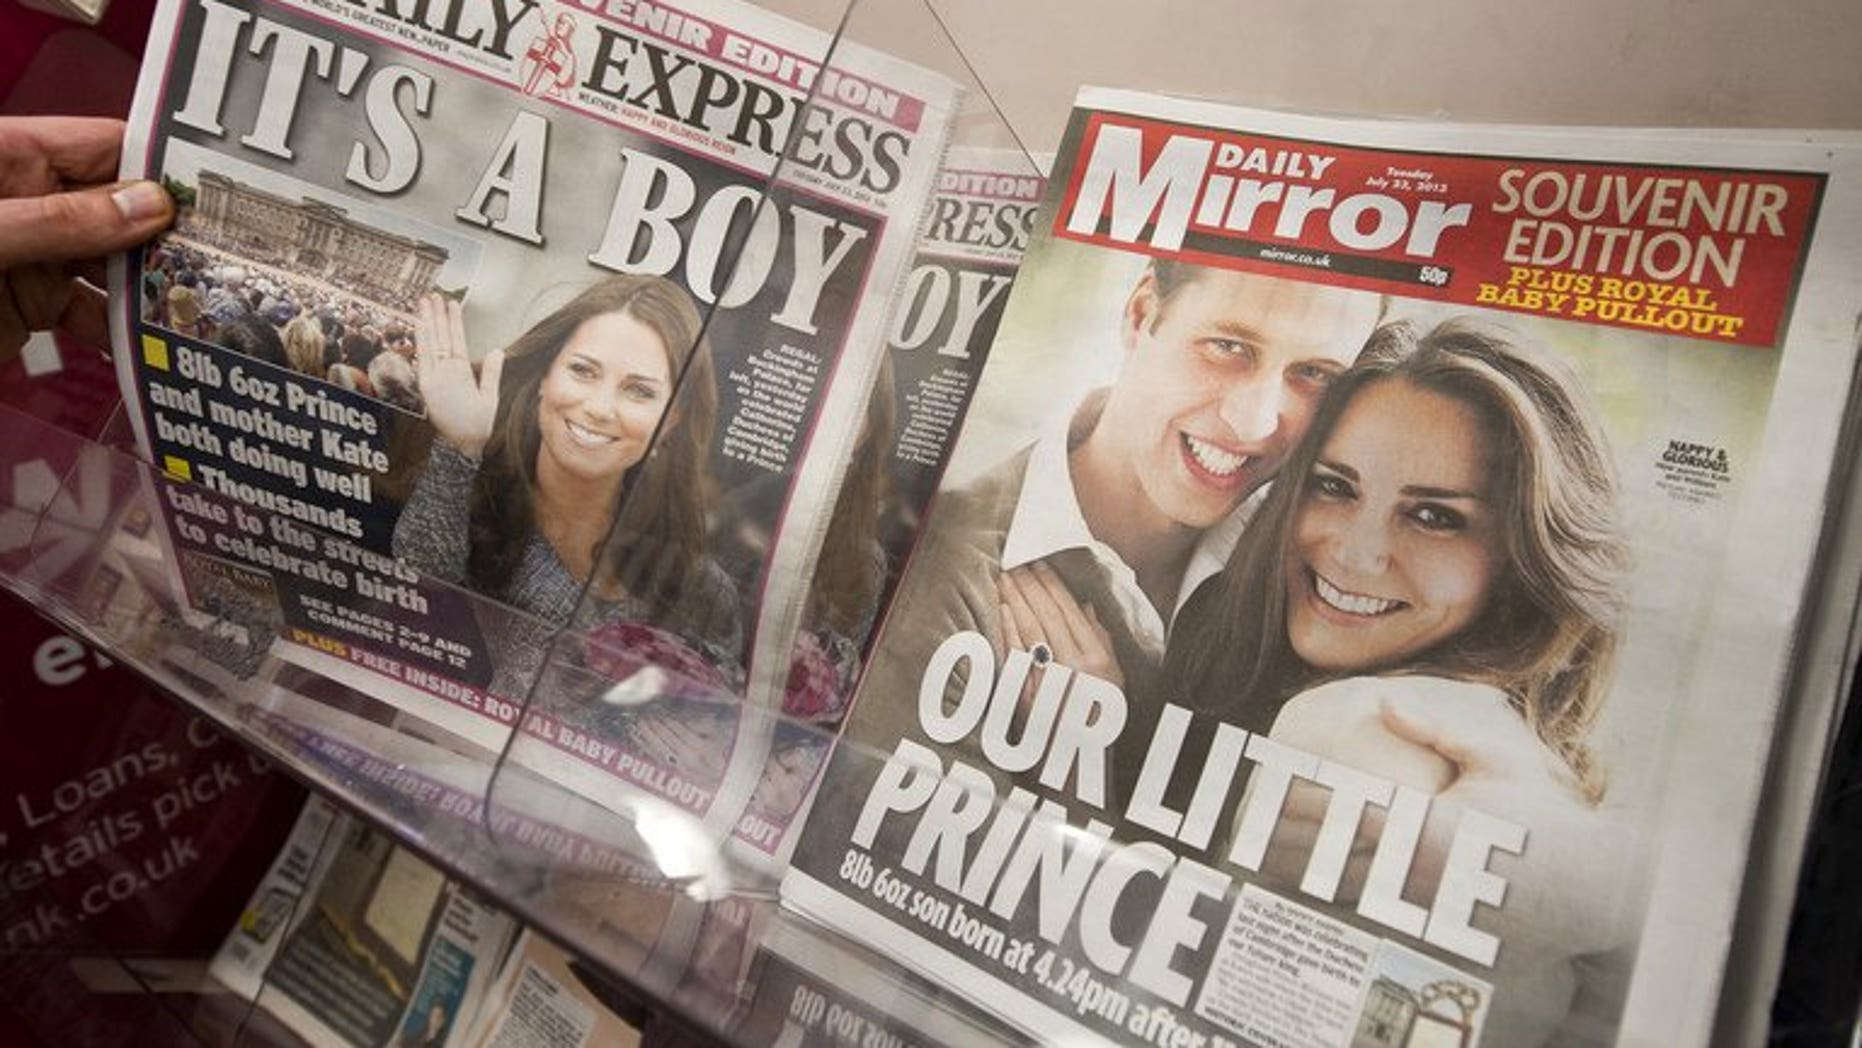 Indian mystics predict elected role for royal baby | Fox News